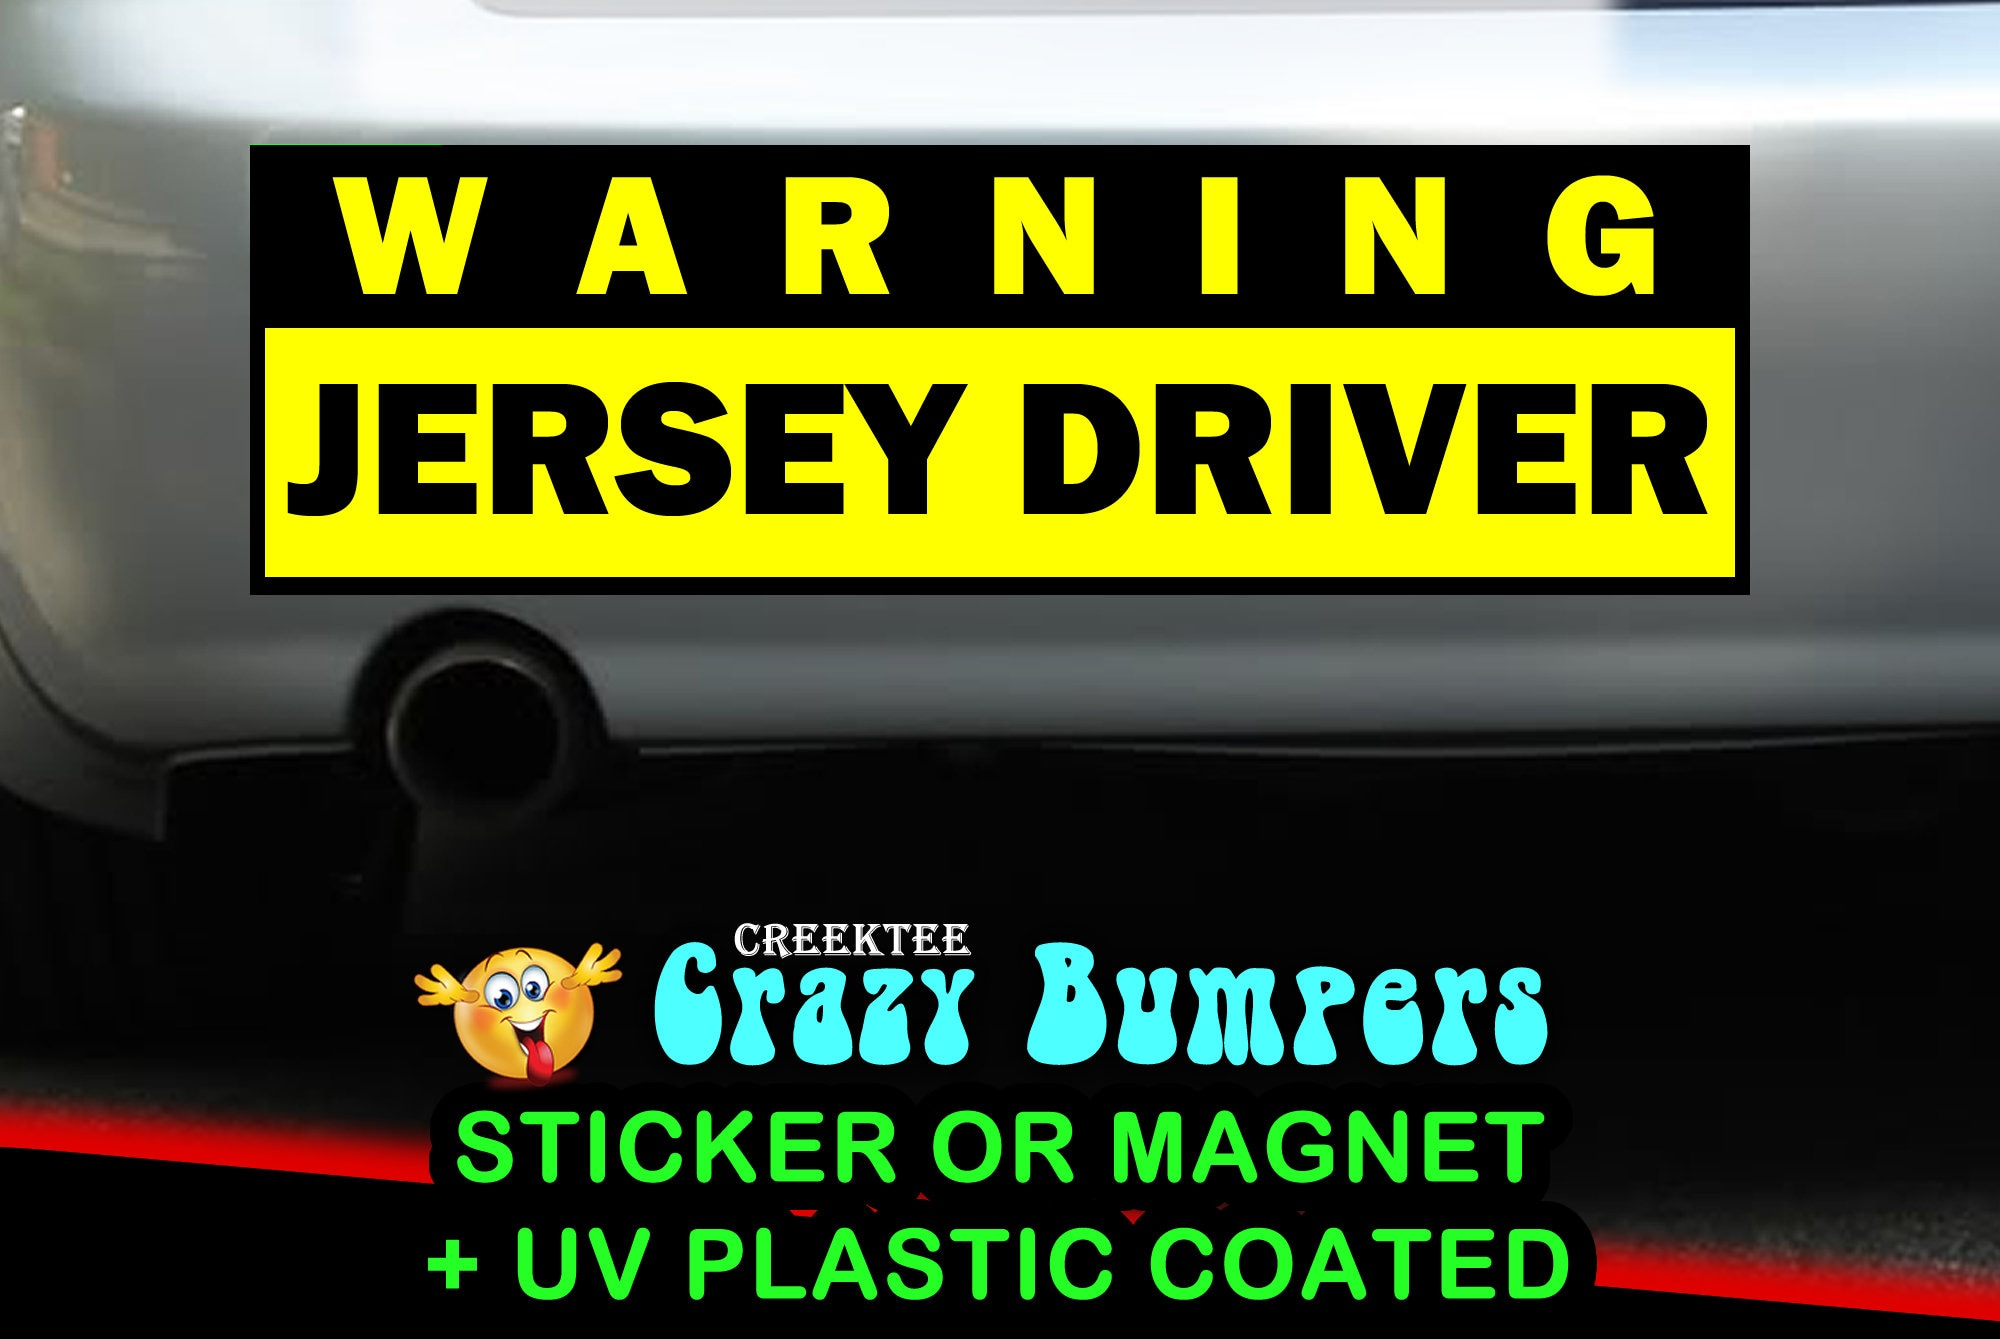 CAD$9.99 - Warning Jersey Driver Bumper Sticker 10 x 3 Bumper Sticker or Magnetic Bumper Sticker Available